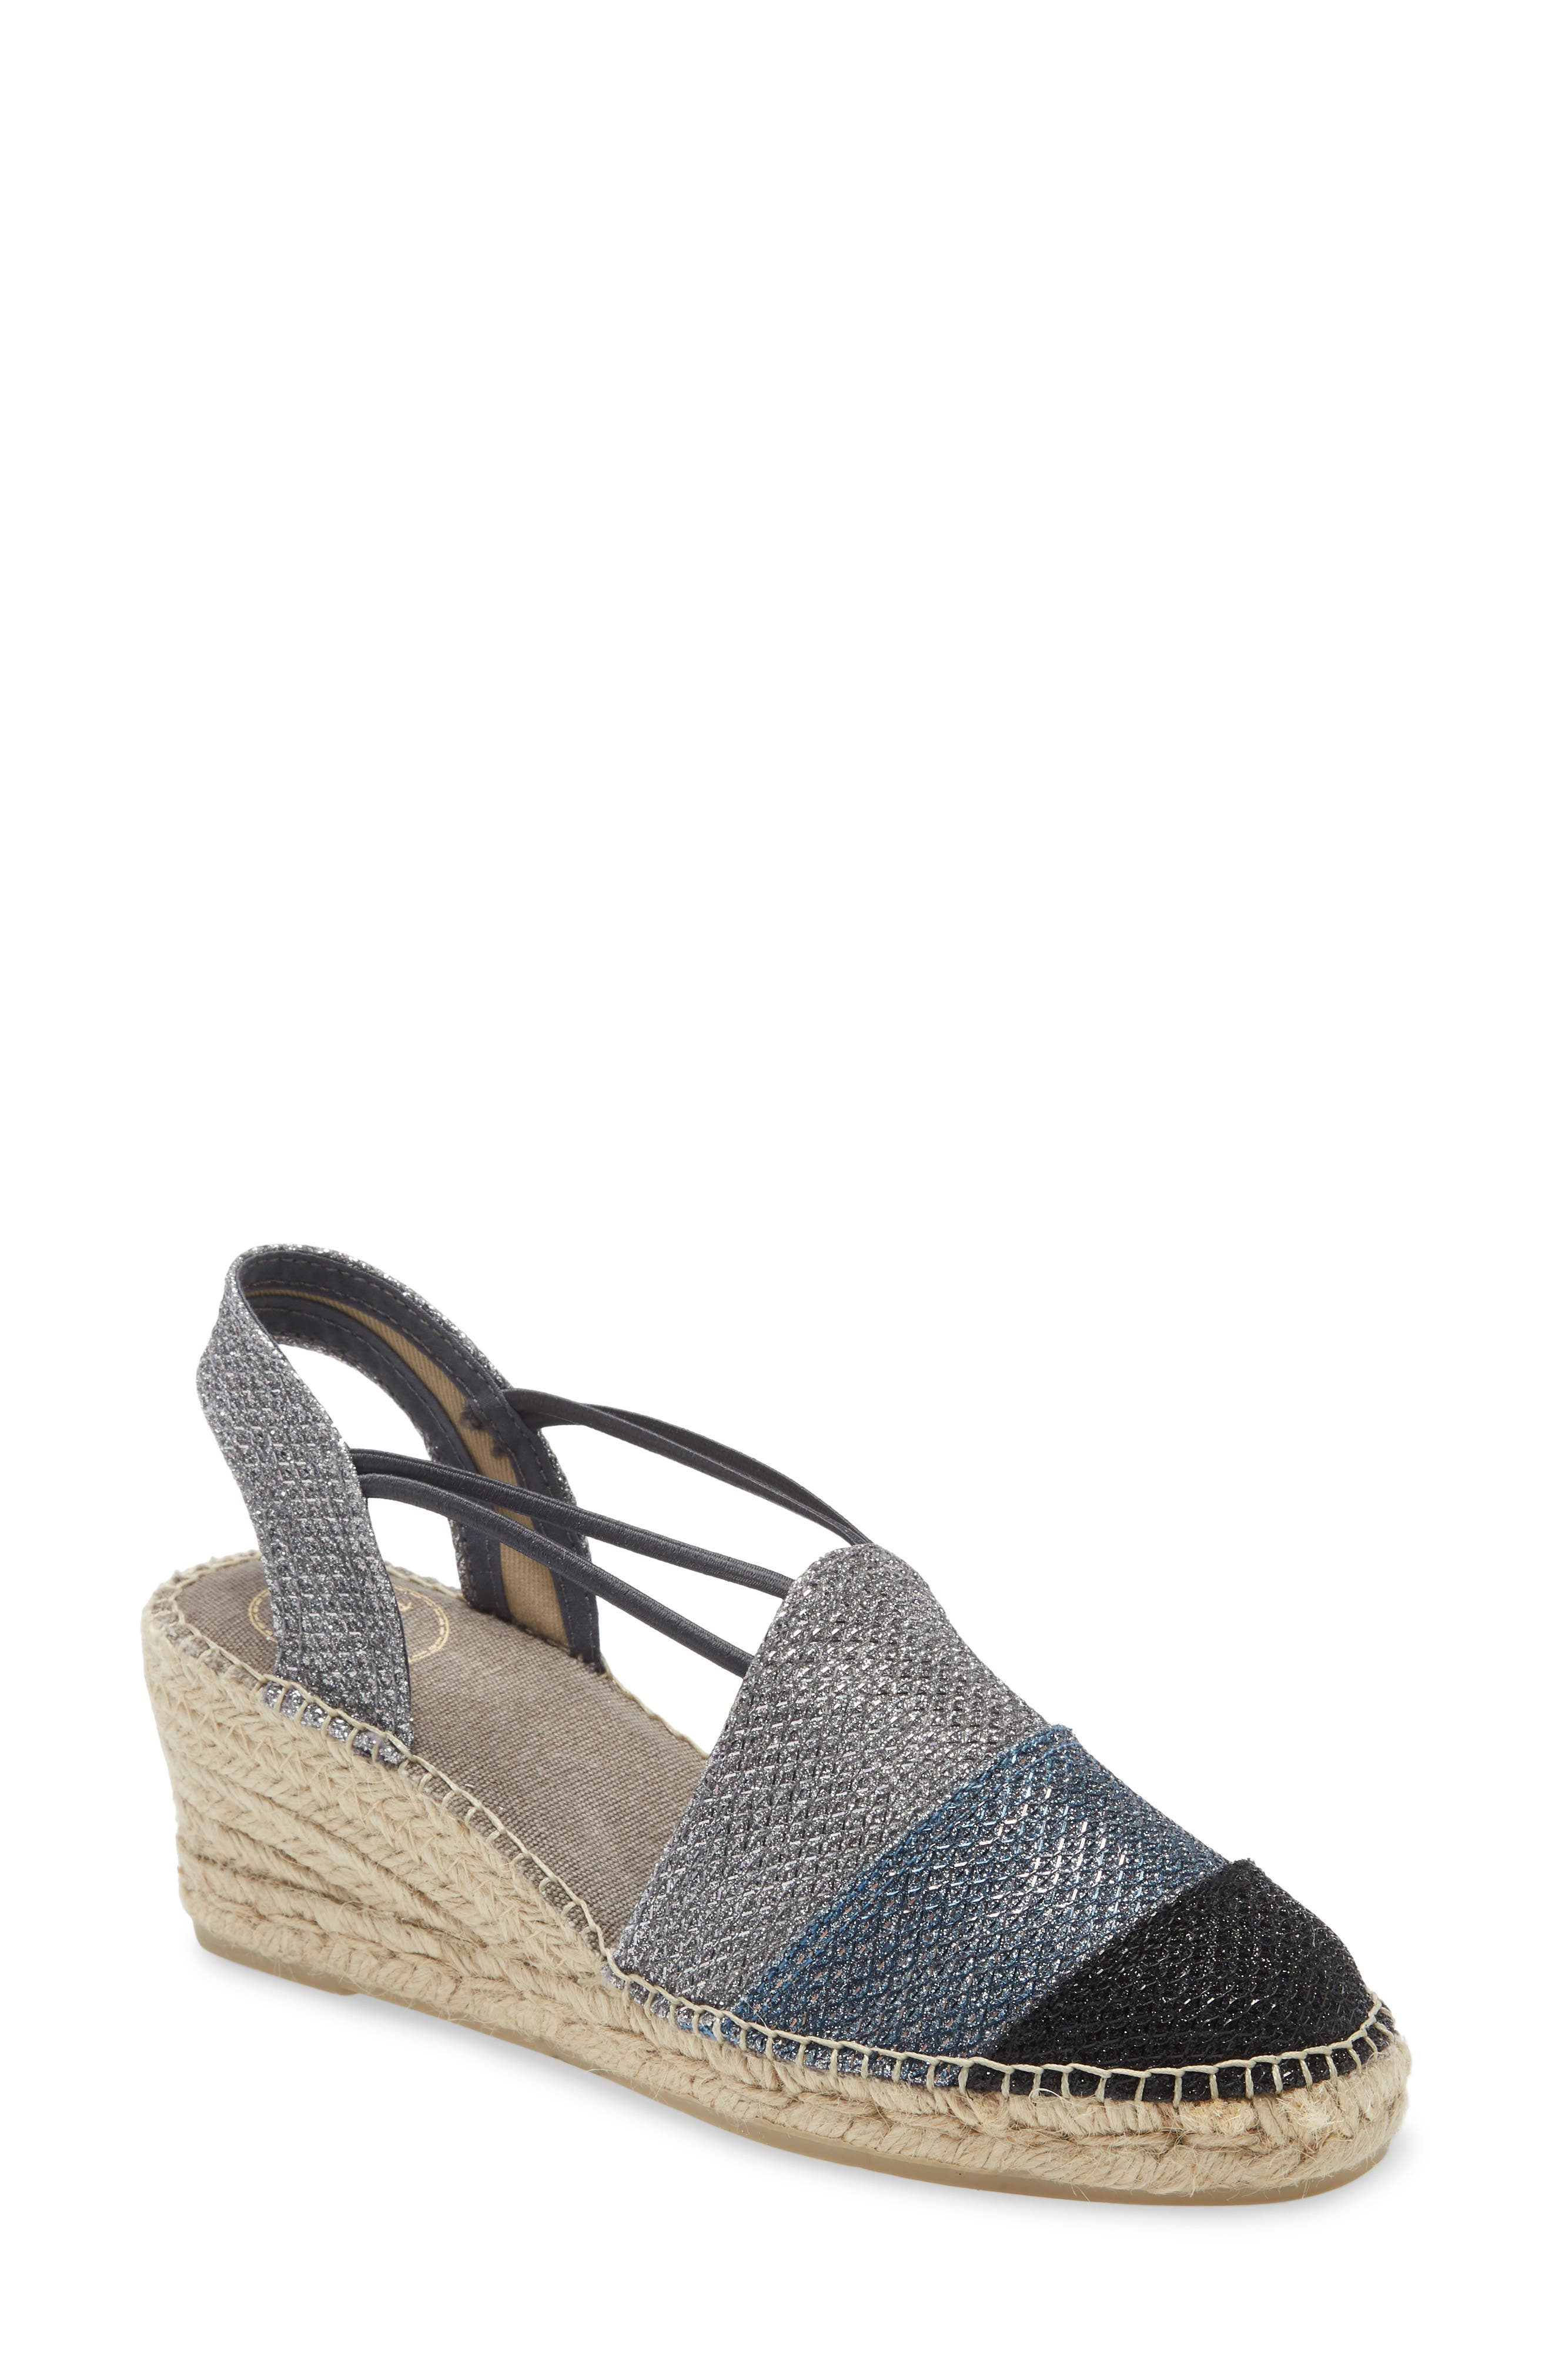 Metallic threads bring a touch of glamour to a breezy espadrille that\\\'s handcrafted in Spain using traditional techniques. Style Name: Toni Pons Tour Espadrille Wedge (Women). Style Number: 5993036. Available in stores.